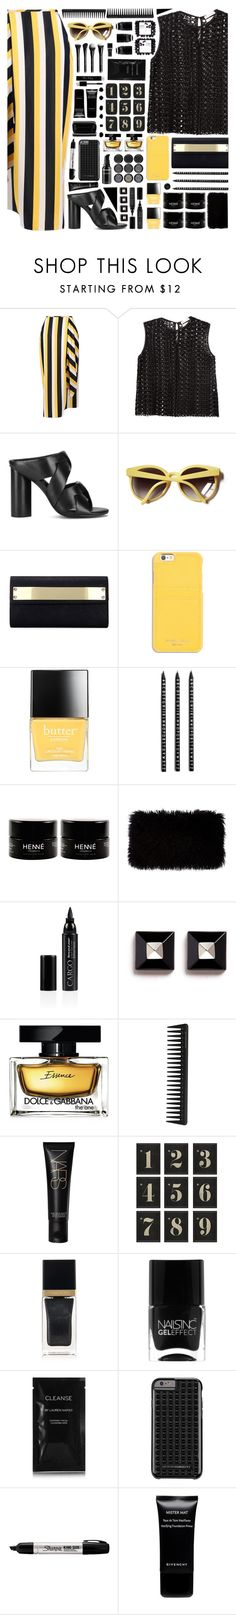 """2088 // Q u a d r i d a v y n e"" by arierrefatir on Polyvore featuring STELLA McCARTNEY, Each X Other, Senso, Linda Farrow, MICHAEL Michael Kors, Butter London, Design Letters, Donna Karan, CARGO and Givenchy"